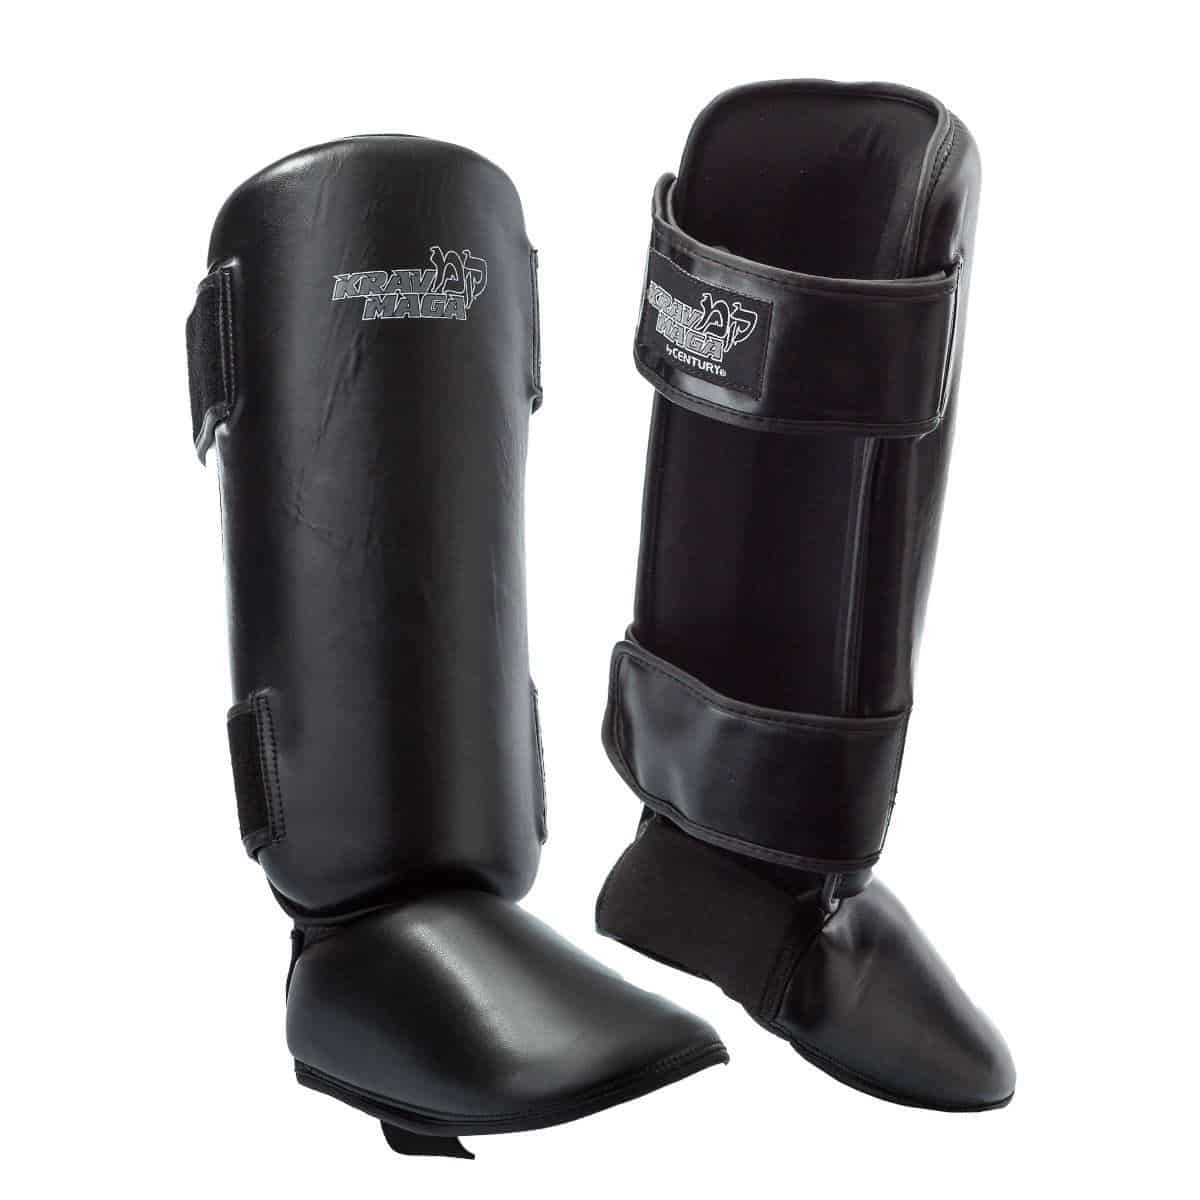 Krav maga padded shin guards